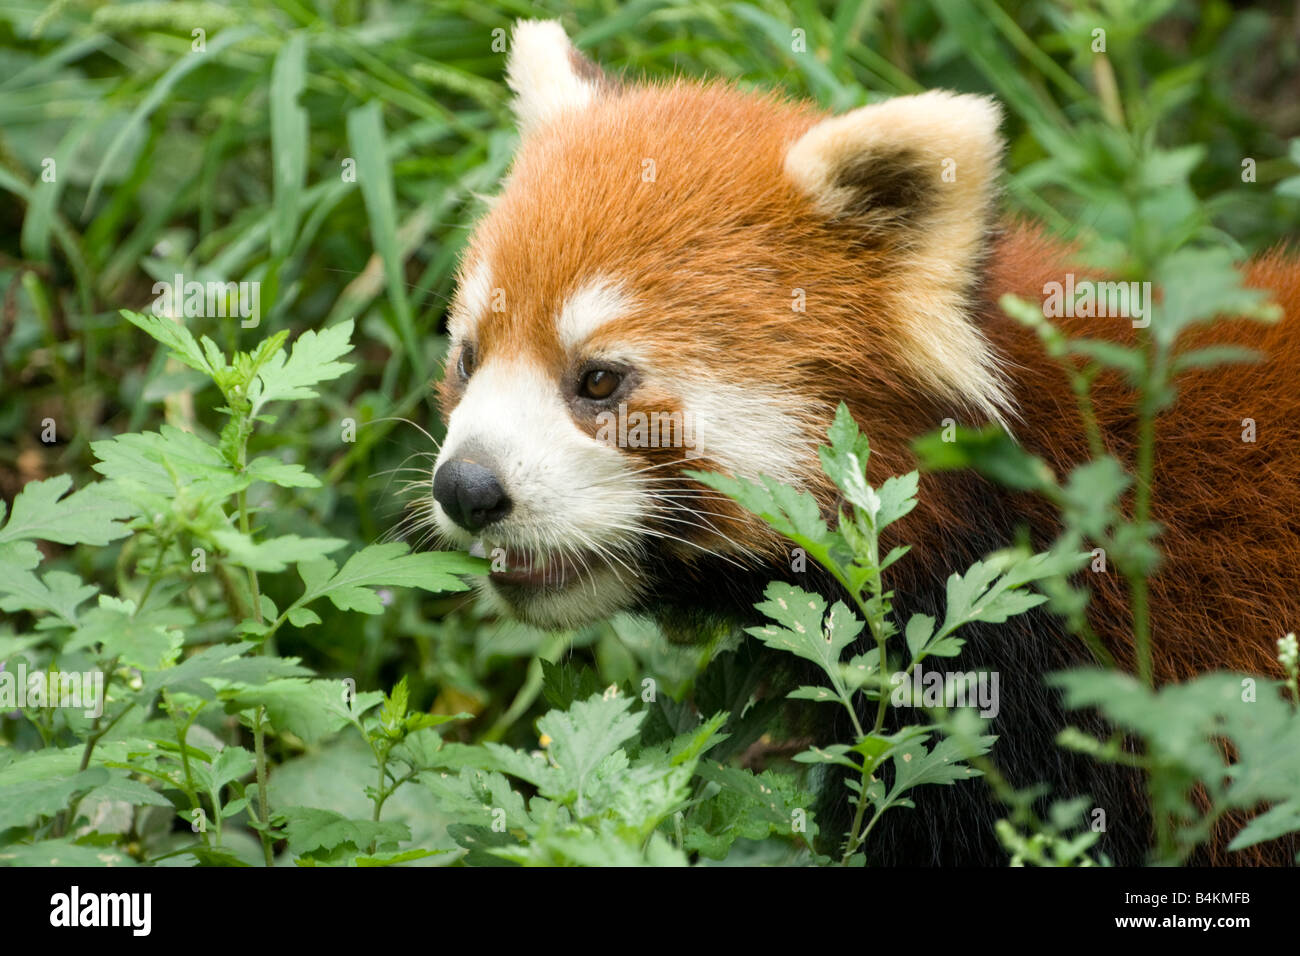 A red panda (Ailurus fulgens) sniffing undergrowth Chengdu Panda Breeding and Research Center China - Stock Image